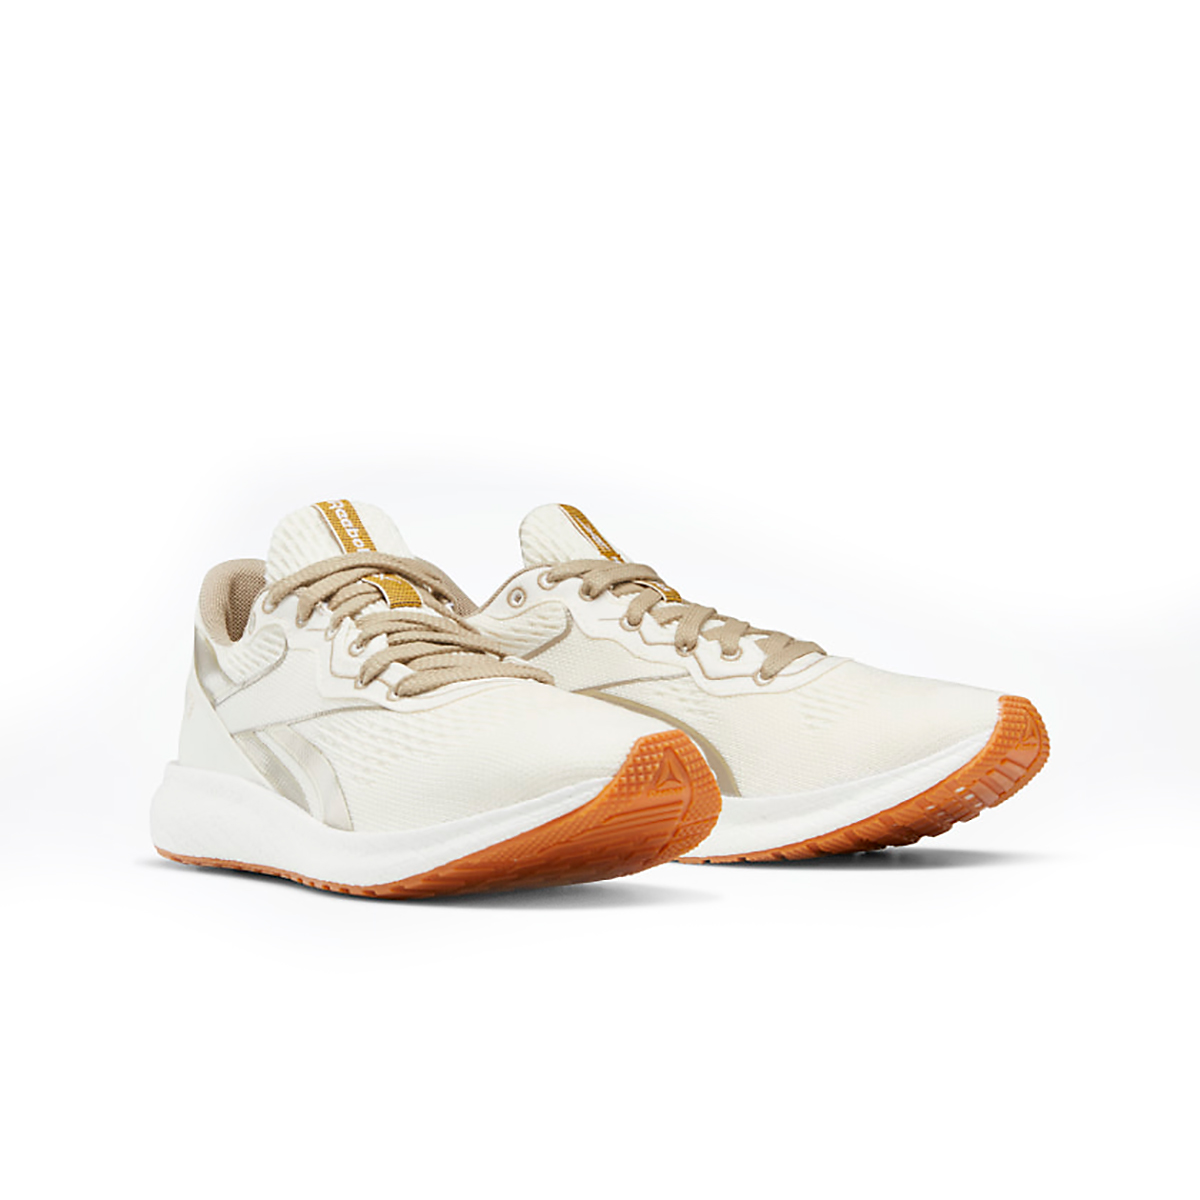 Men's Reebok Forever Floatride Grow Running Shoe - Color: Classic White/Straw/Super Neutral - Size: 8 - Width: Regular, Classic White/Straw/Super Neutral, large, image 3